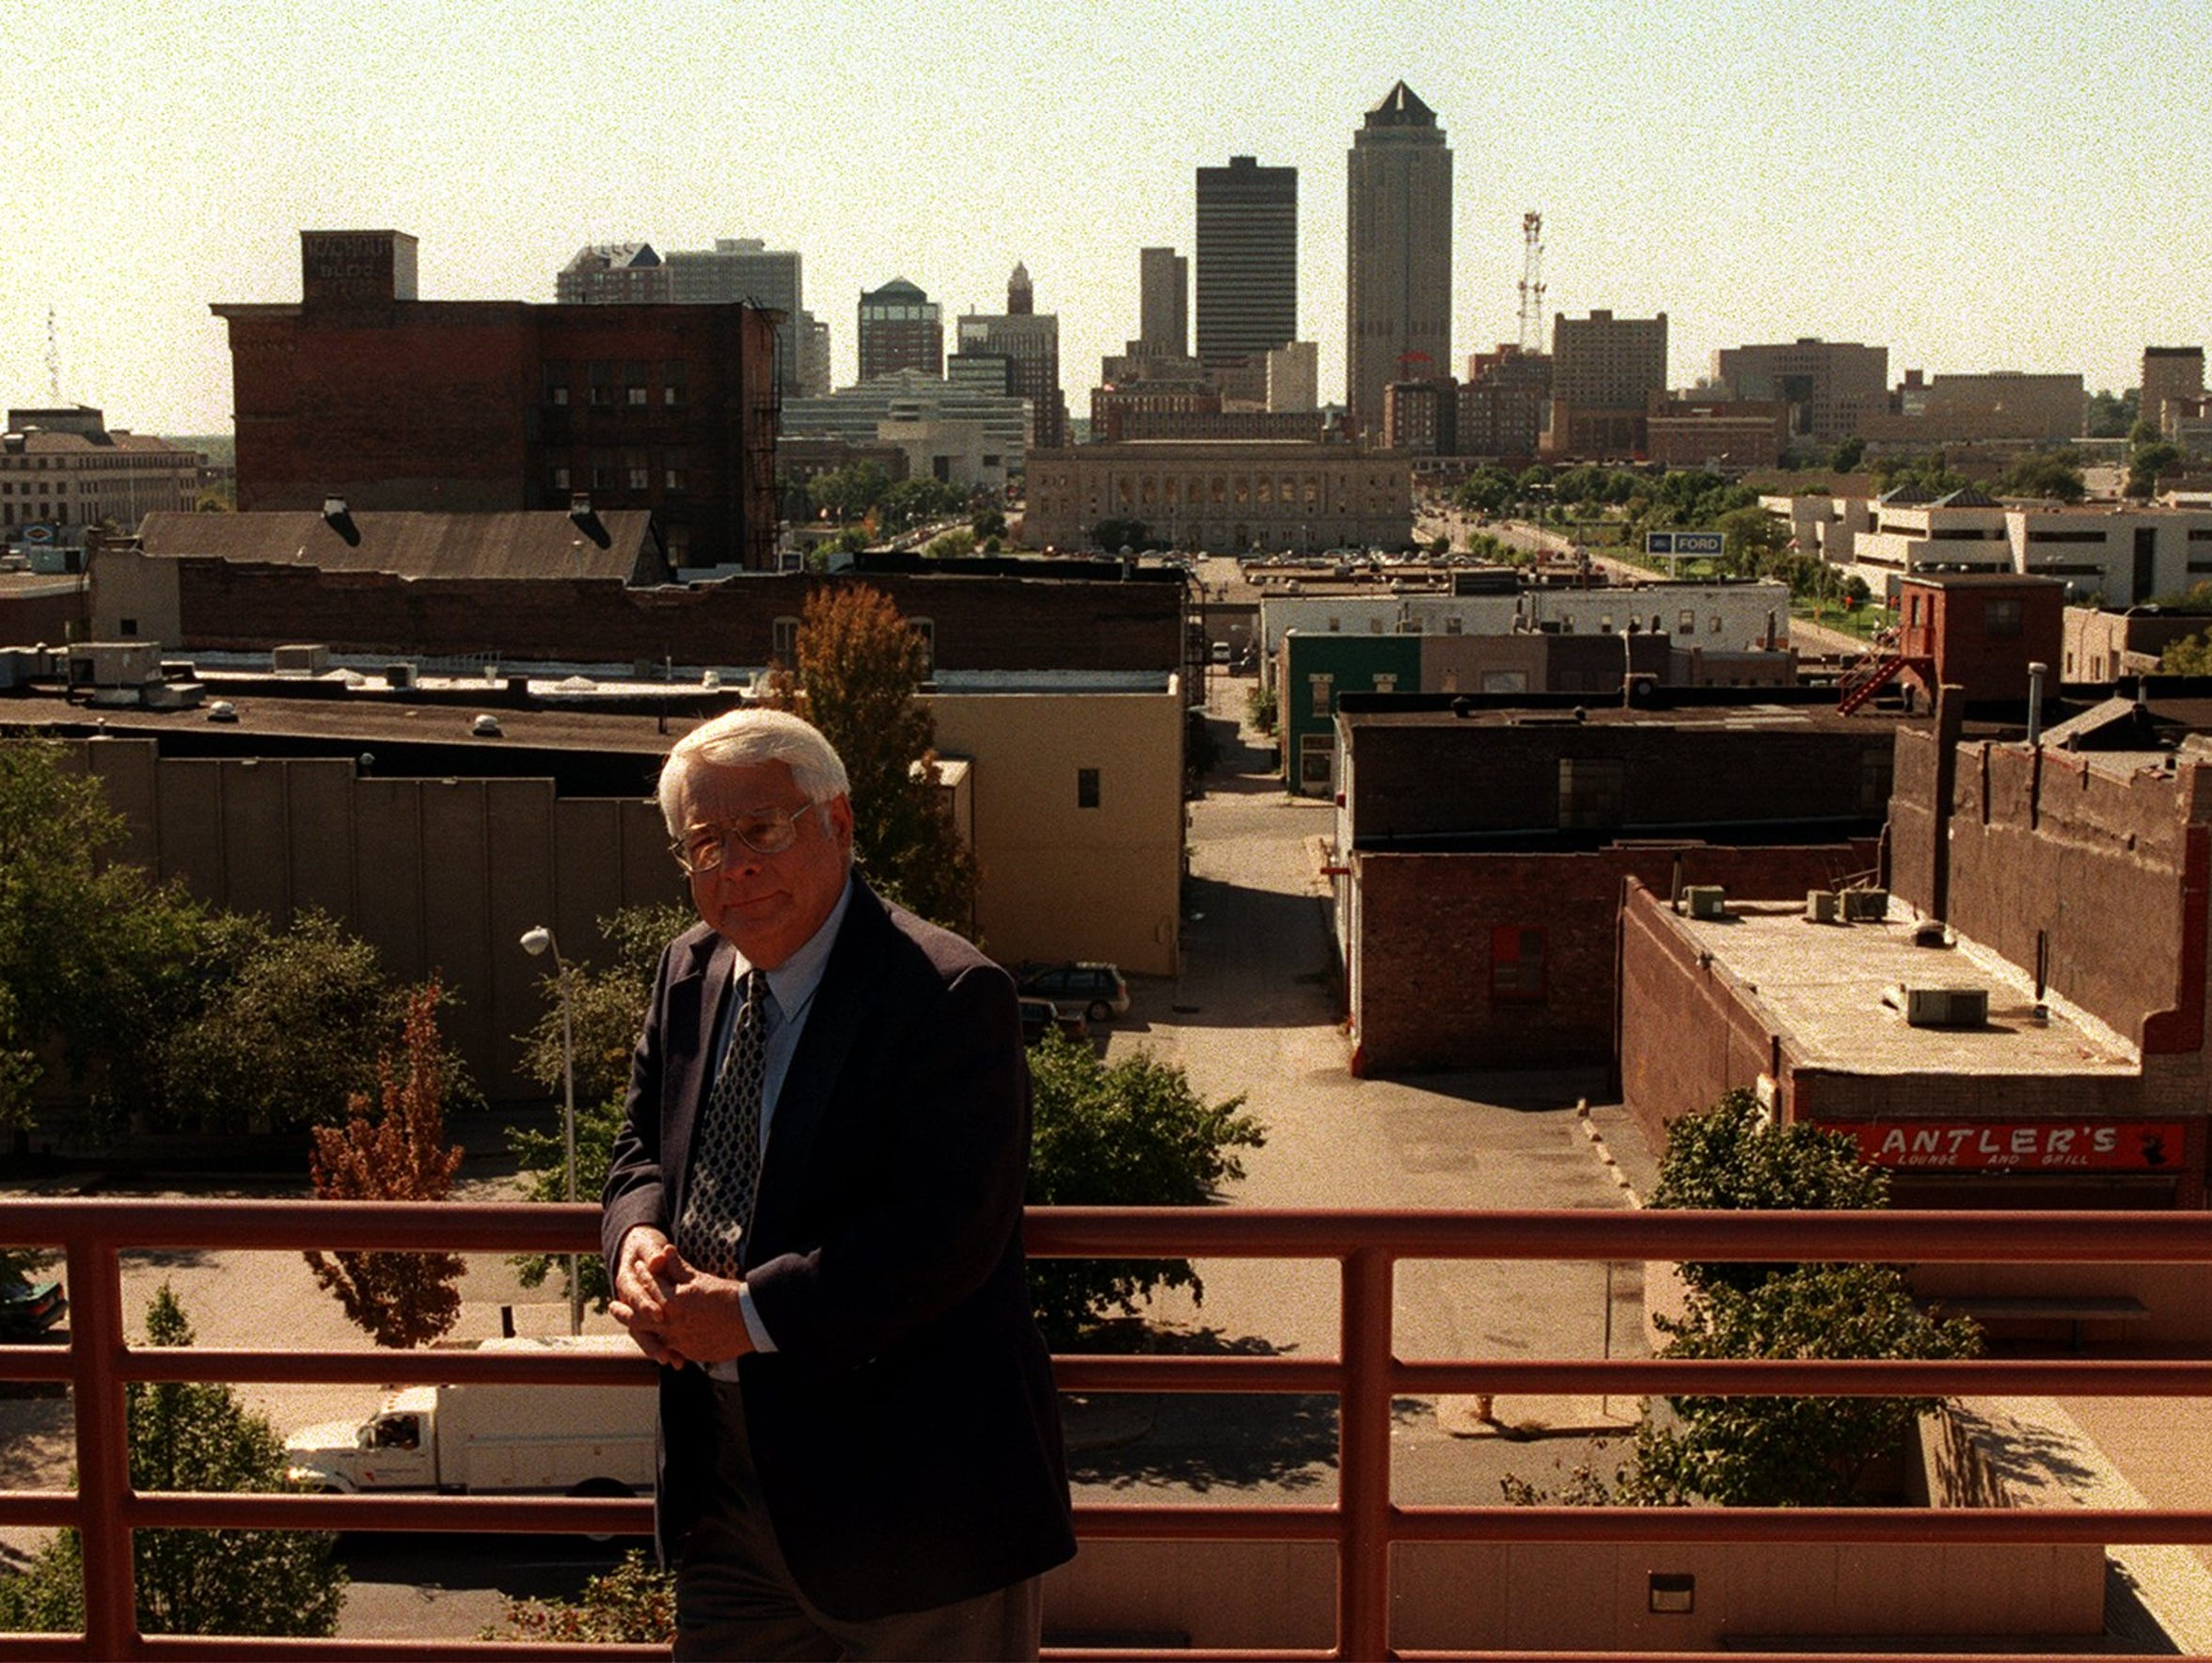 Jim Boyt stands on the roof of the Iowa State Historical